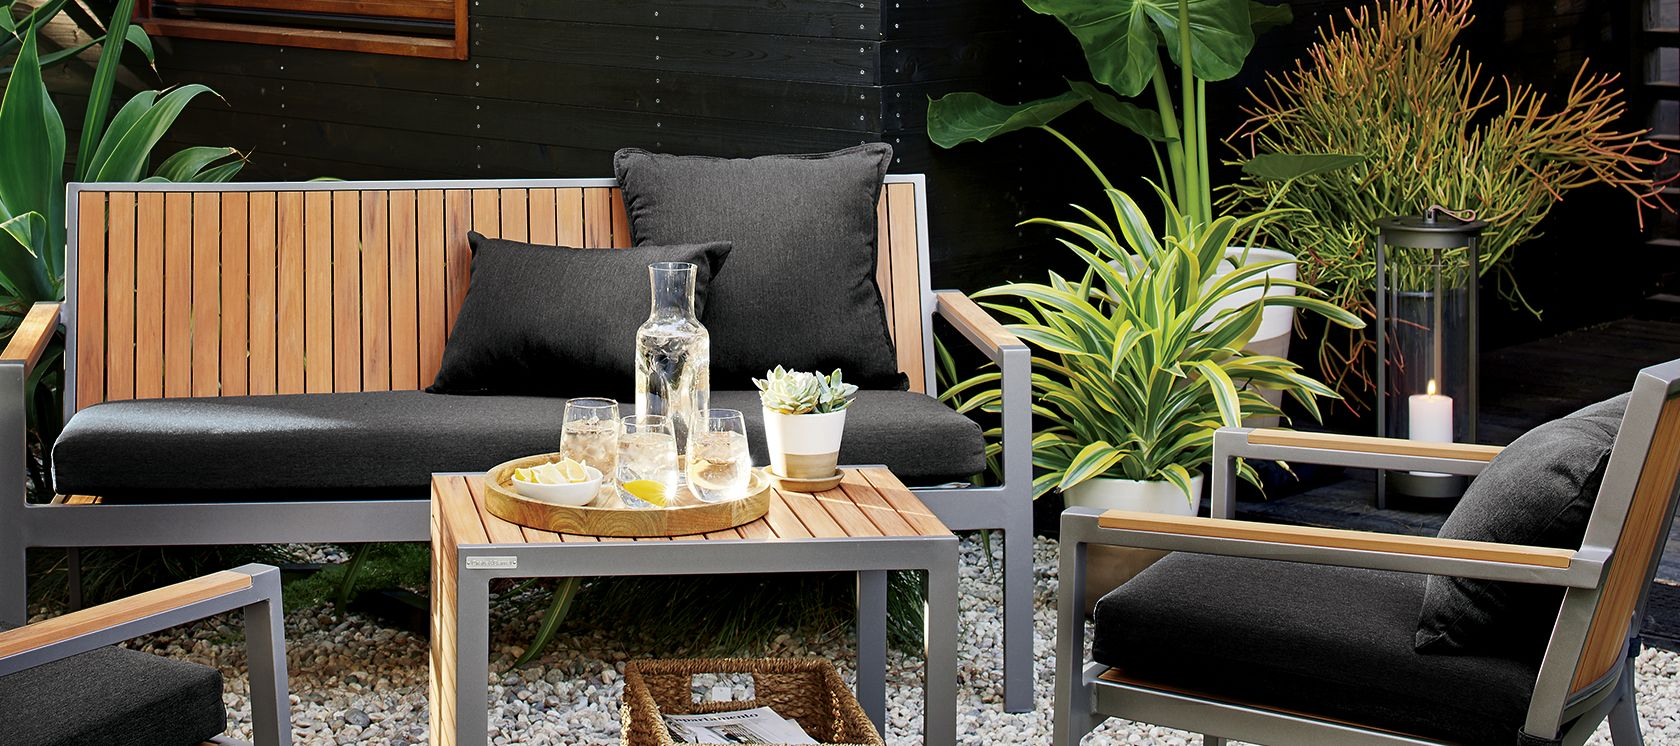 Sale outdoor furniture by material crate and barrel for Low maintenance outdoor furniture